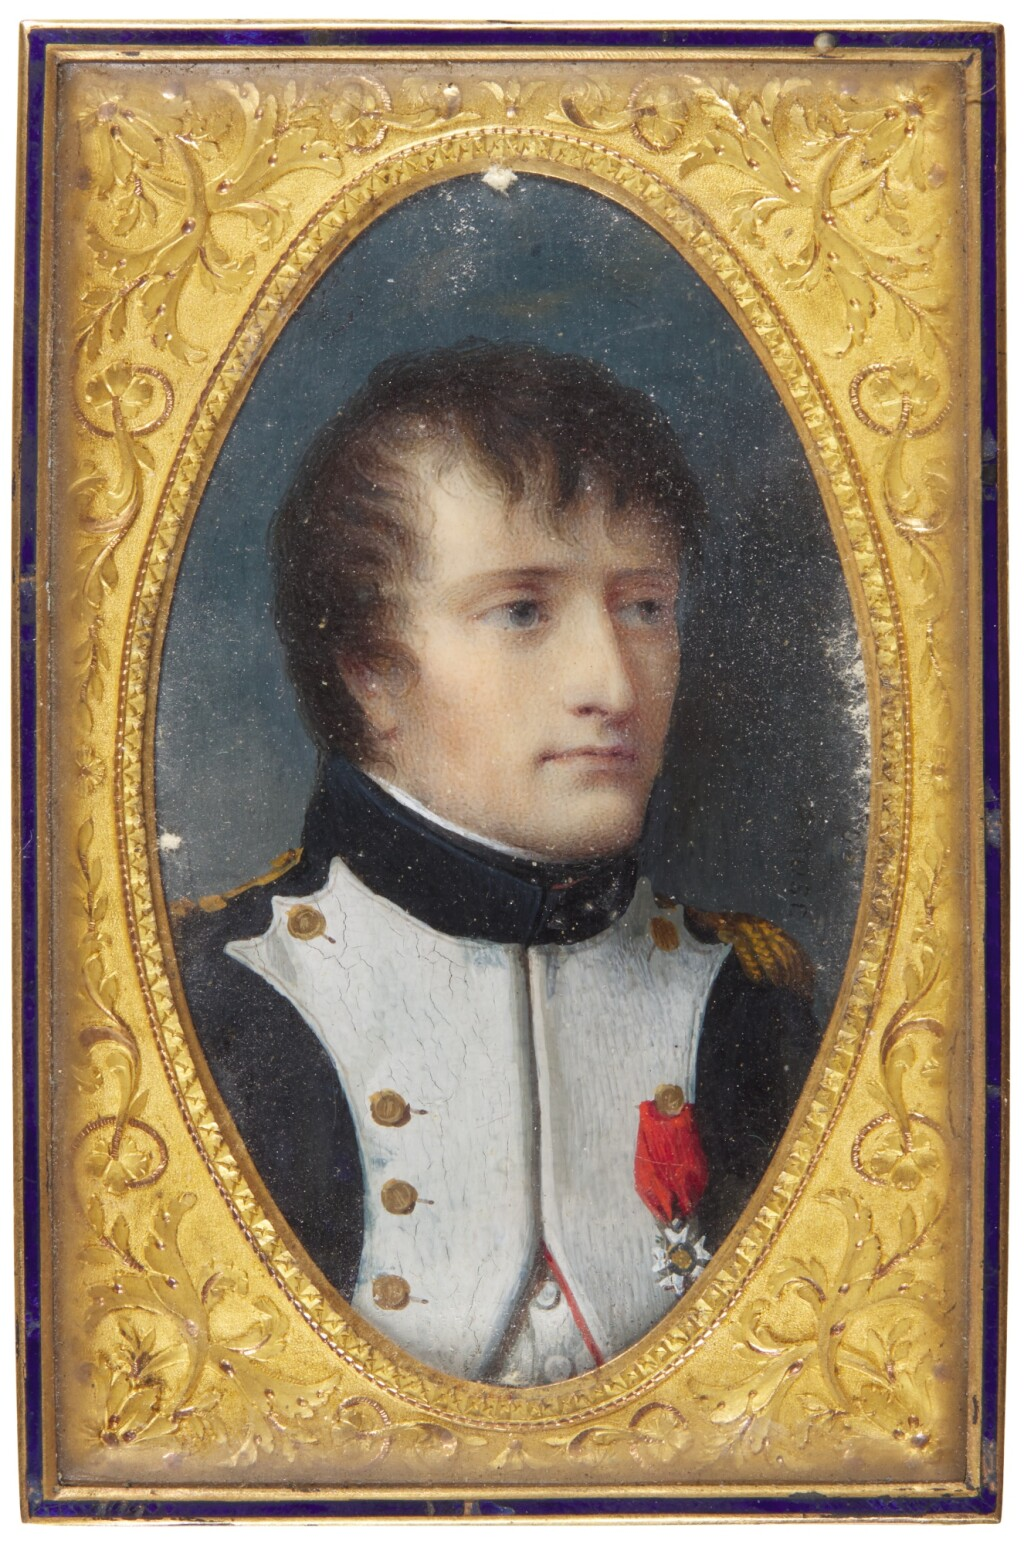 STUDIO OF JEAN-BAPTISTE ISABEY | Portrait of the Emperor Napoleon (1769- 1821)